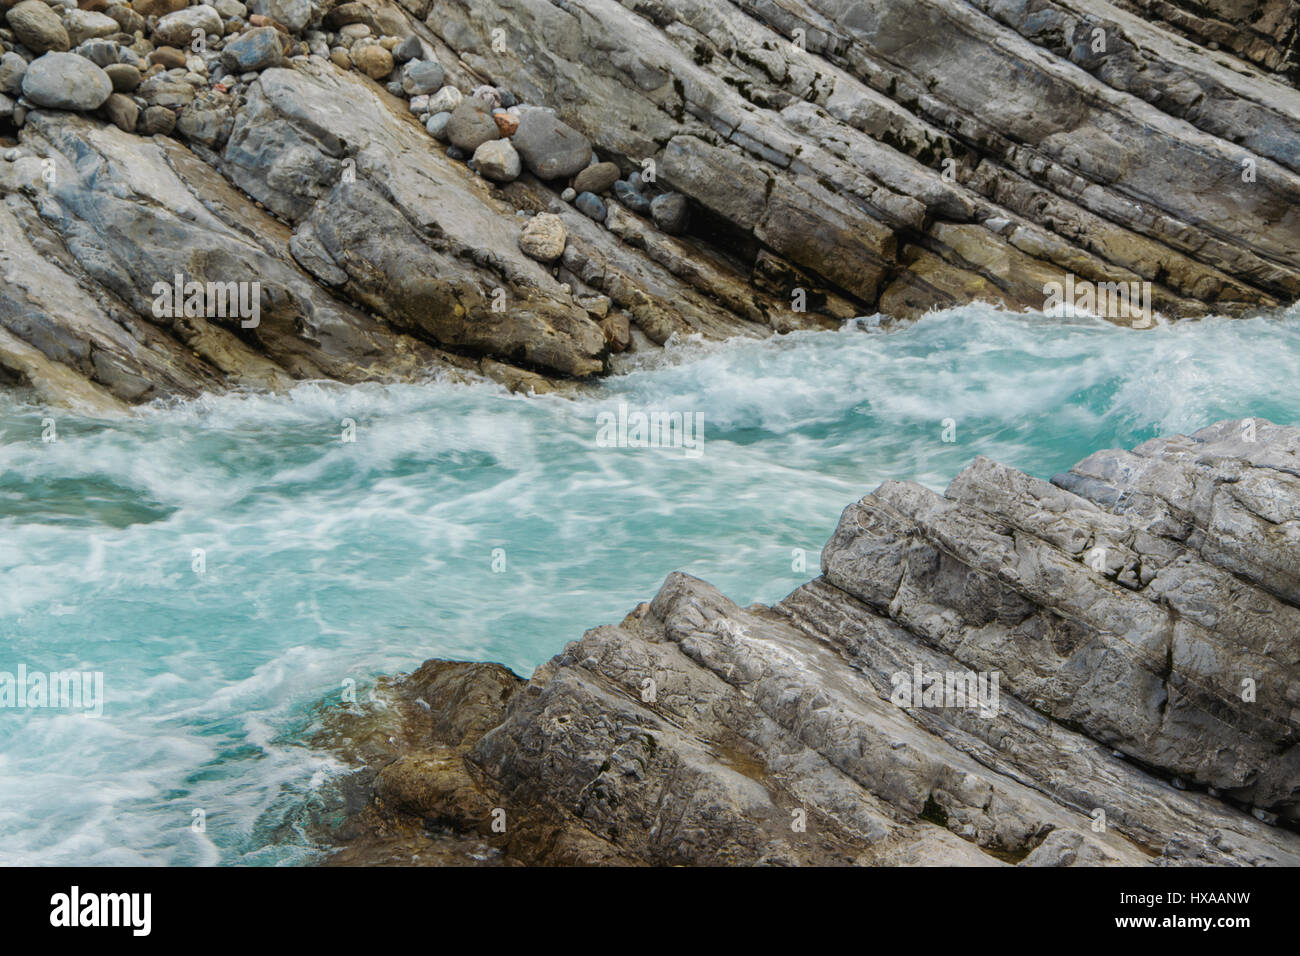 Very particular river rocks carved by turques water, in the mountain - Stock Image